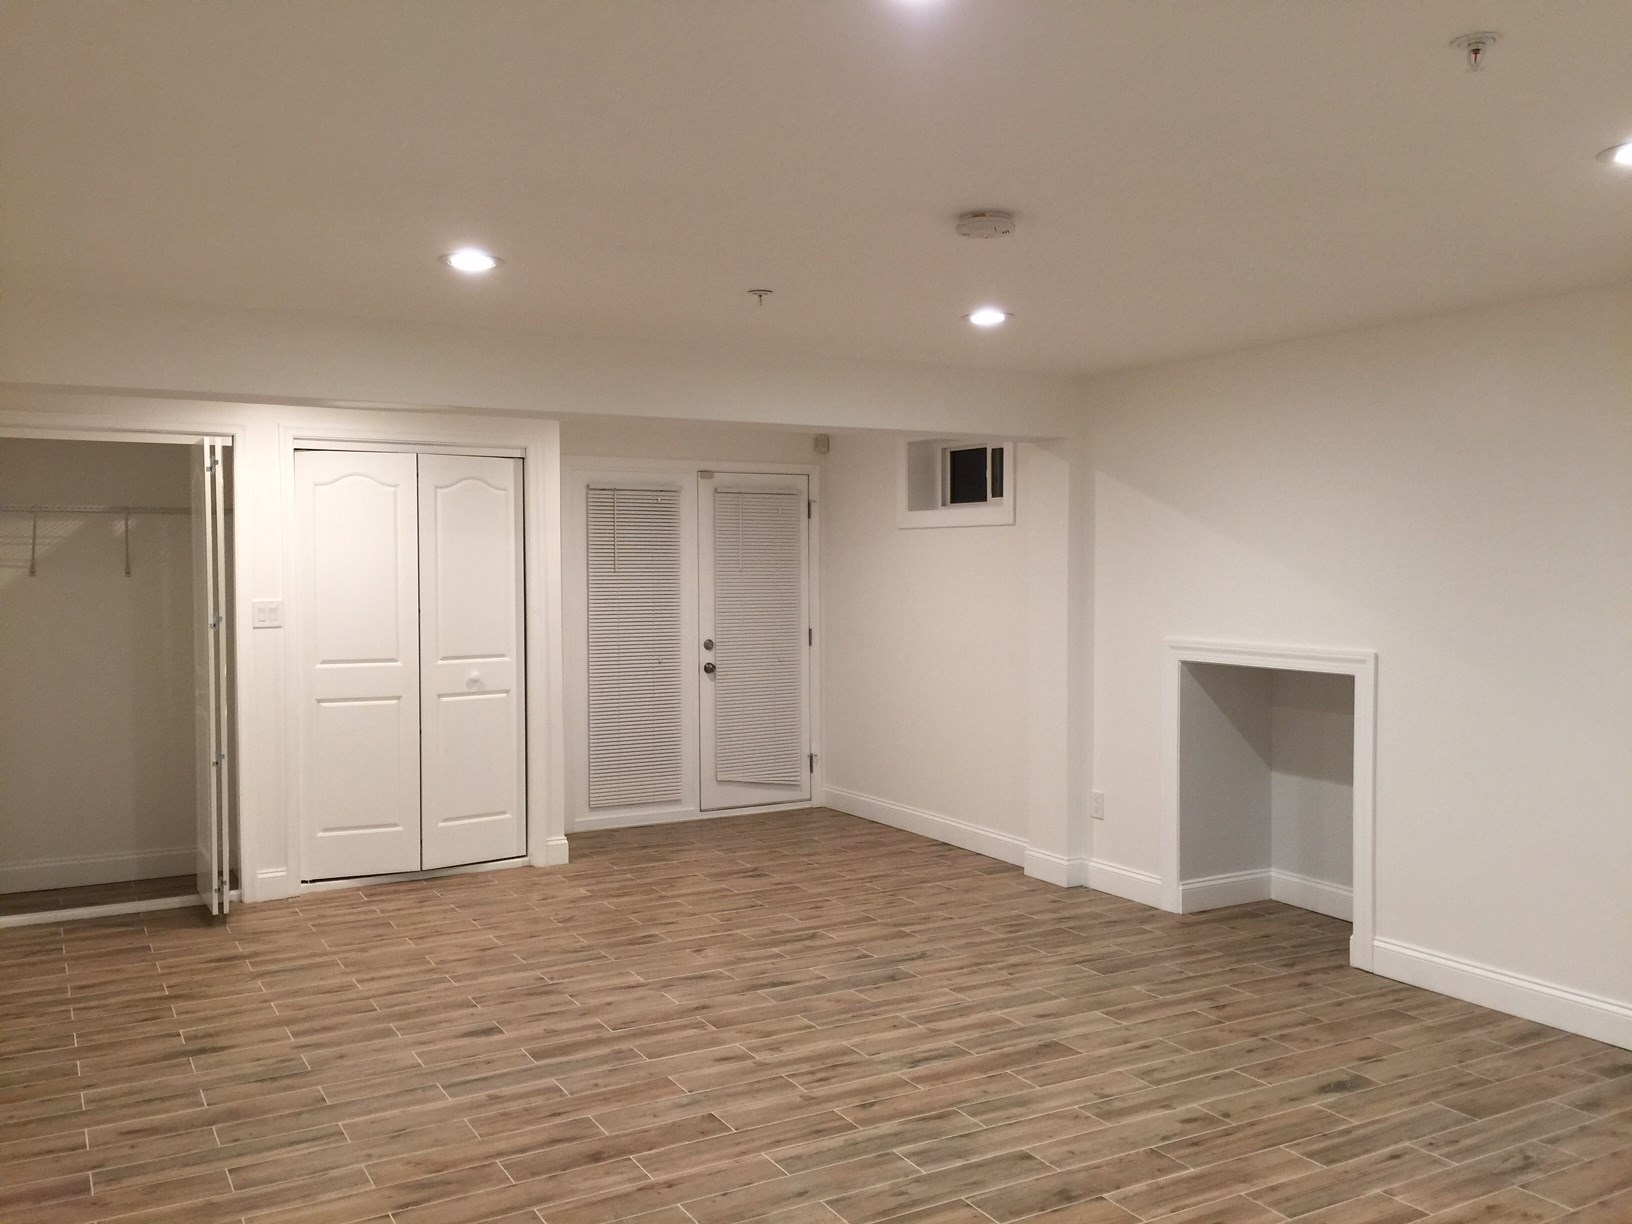 Rooms For Rent Silver Spring MD Apartments House Commercial - Basement apartments for rent in pg maryland